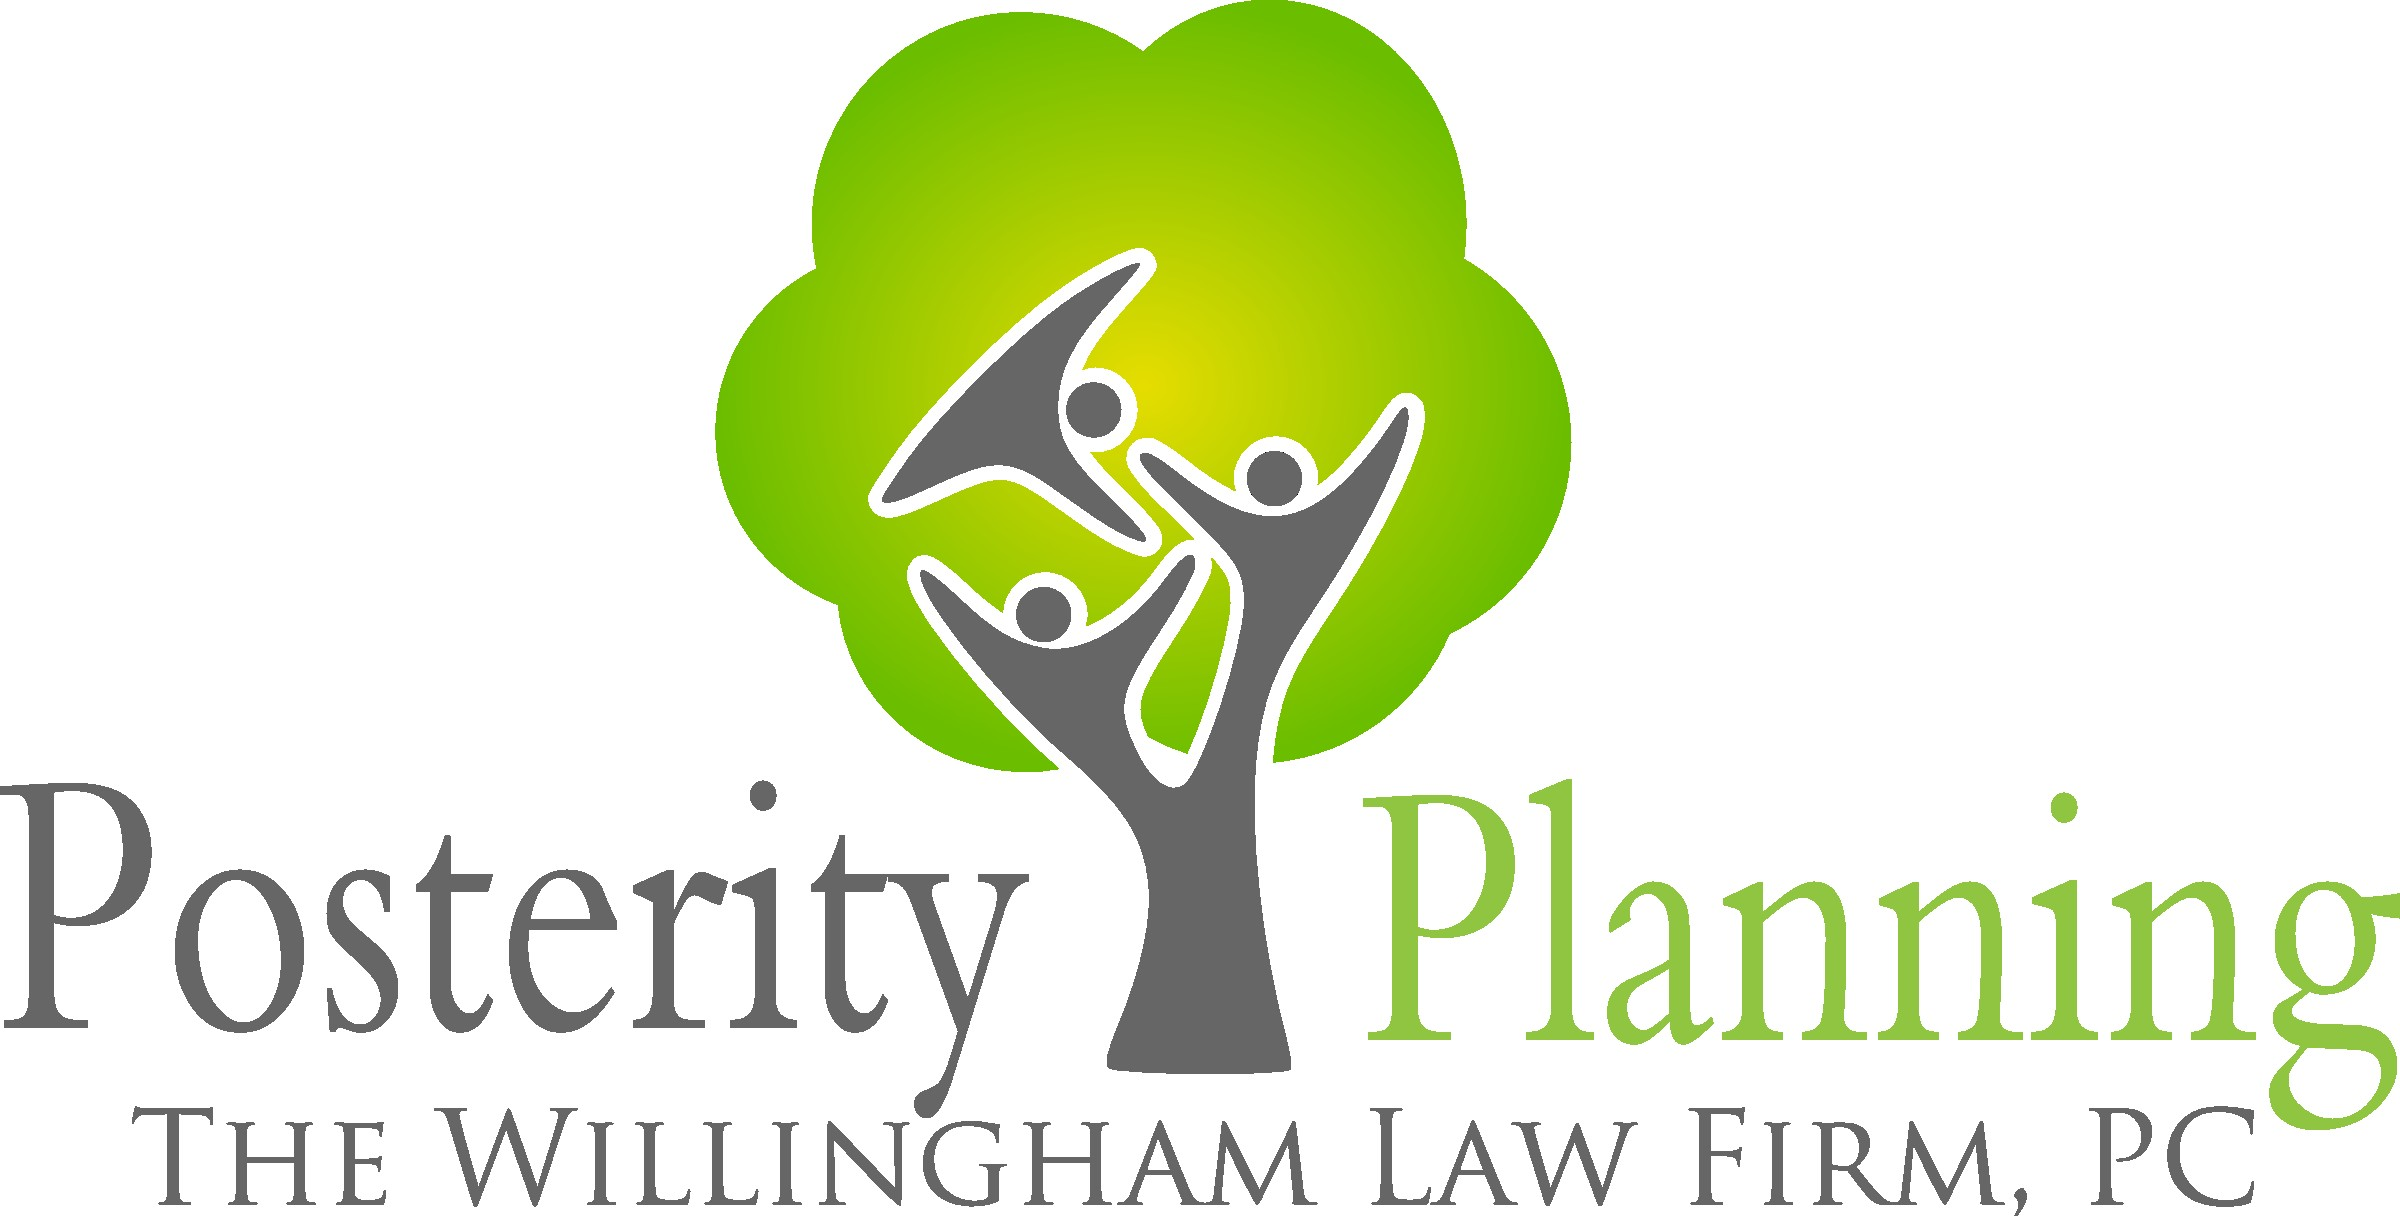 Open House - The Willingham Law Firm